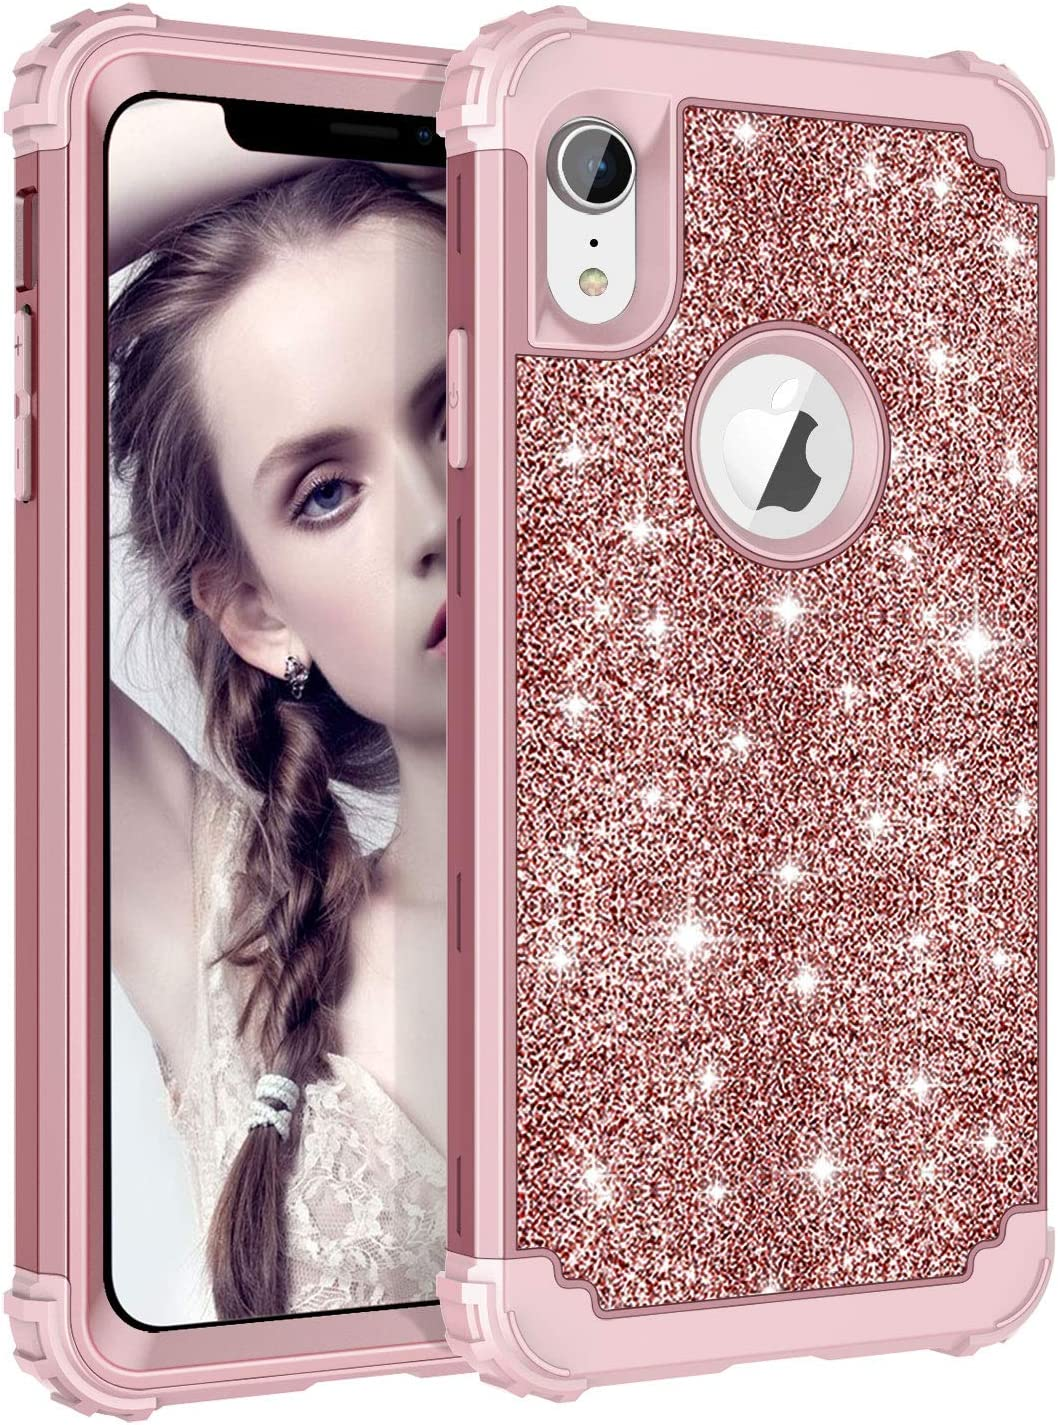 LONTECT Compatible iPhone XR 2018 Case Glitter Sparkle Bling Heavy Duty Hybrid Sturdy High Impact Shockproof Protective Cover Case for Apple iPhone XR 6.1 Display, Shiny Rose Gold